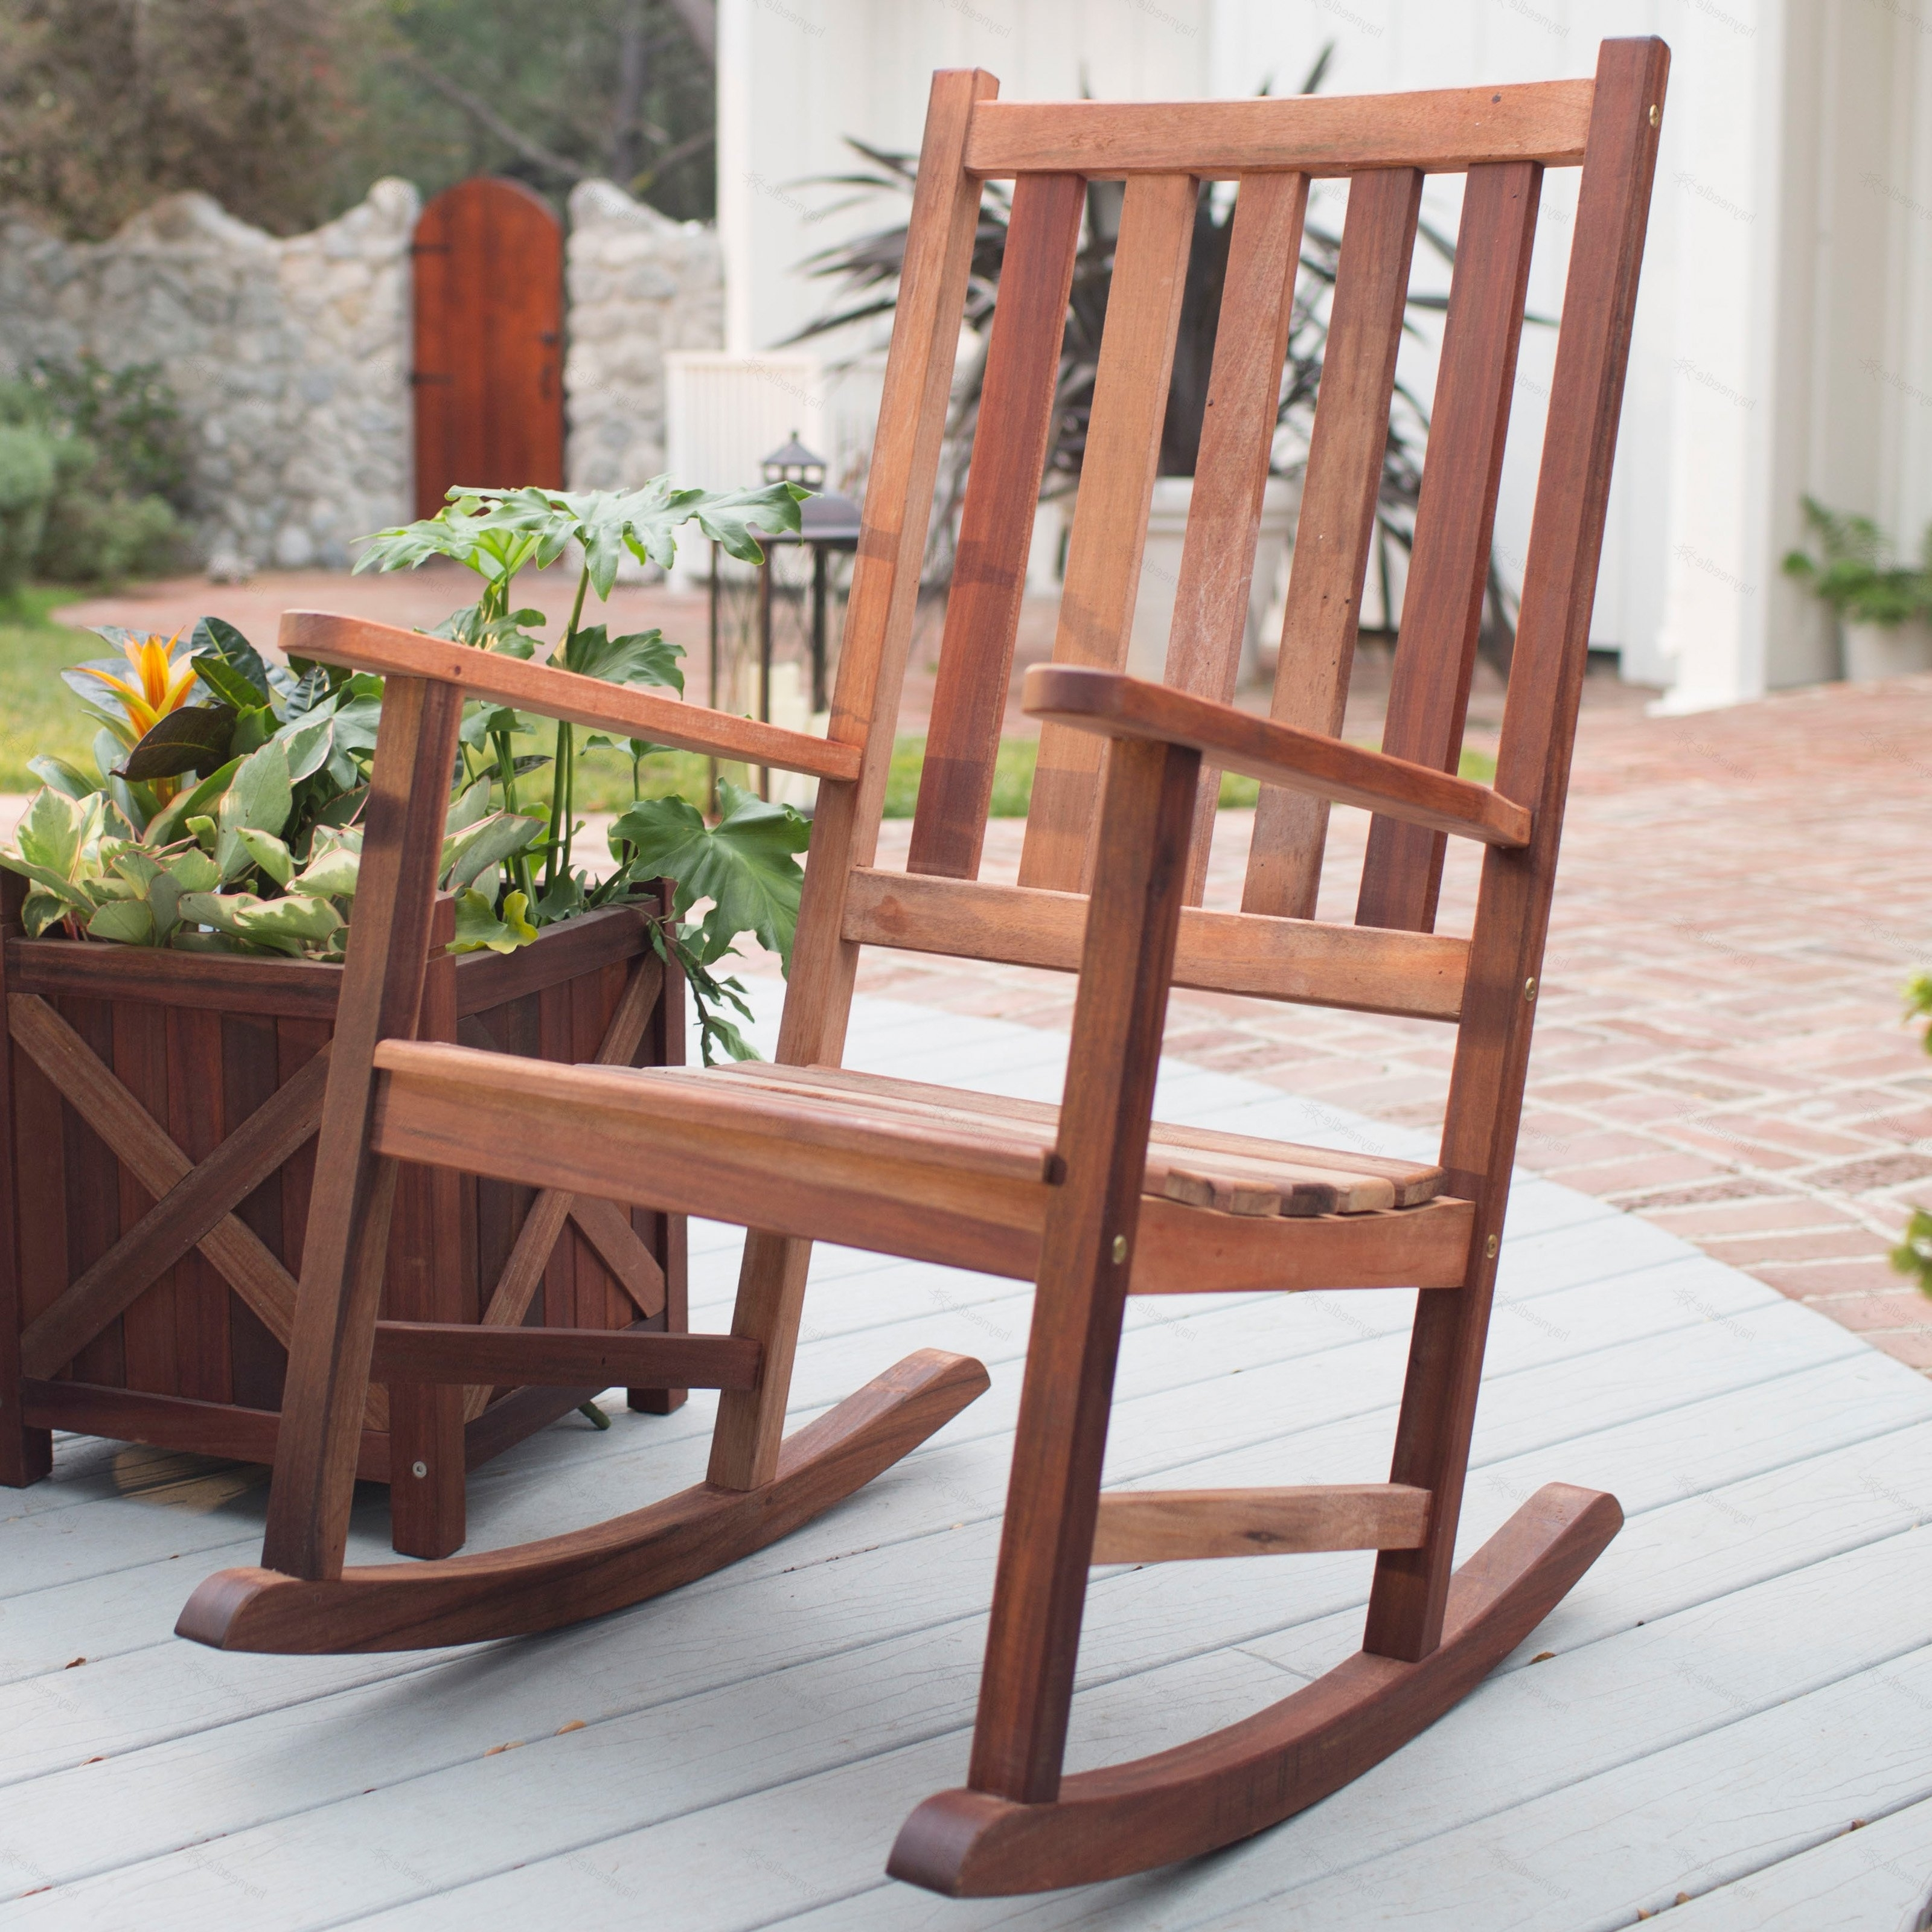 Newest Outdoor Vinyl Rocking Chairs With Regard To Patio & Garden : Rocking Chairs For Outdoors Amazing Amazon Merry (View 5 of 15)